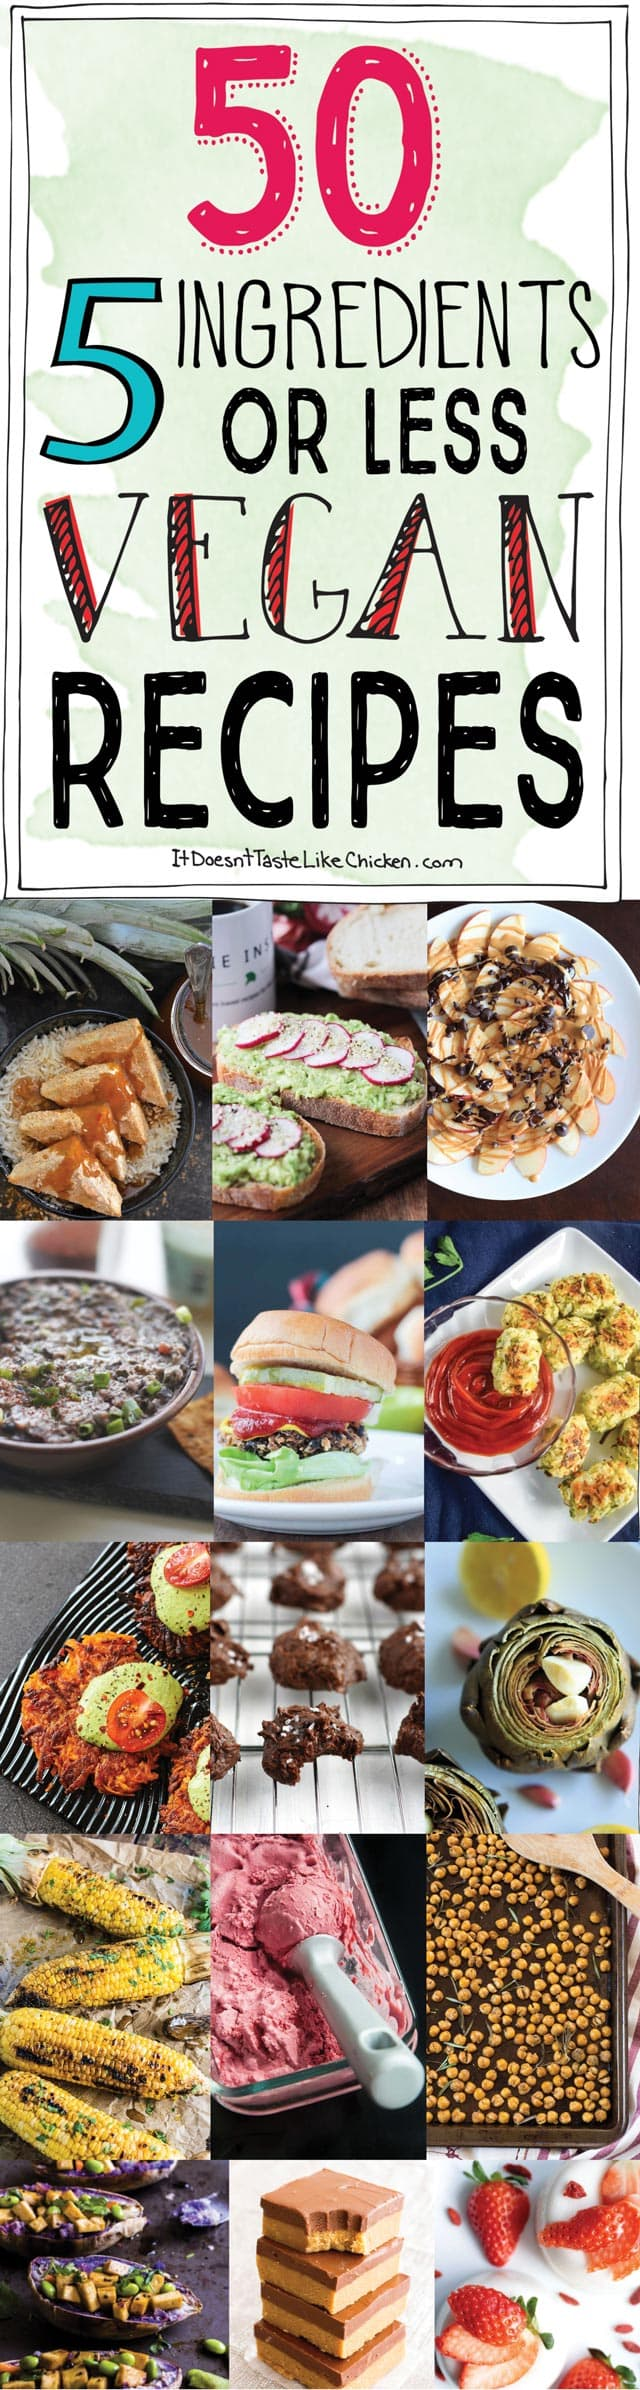 50 5 ingredients or less vegan recipes it doesnt taste like chicken 50 5 ingredients or less vegan recipes quick and easy breakfast snacks forumfinder Images